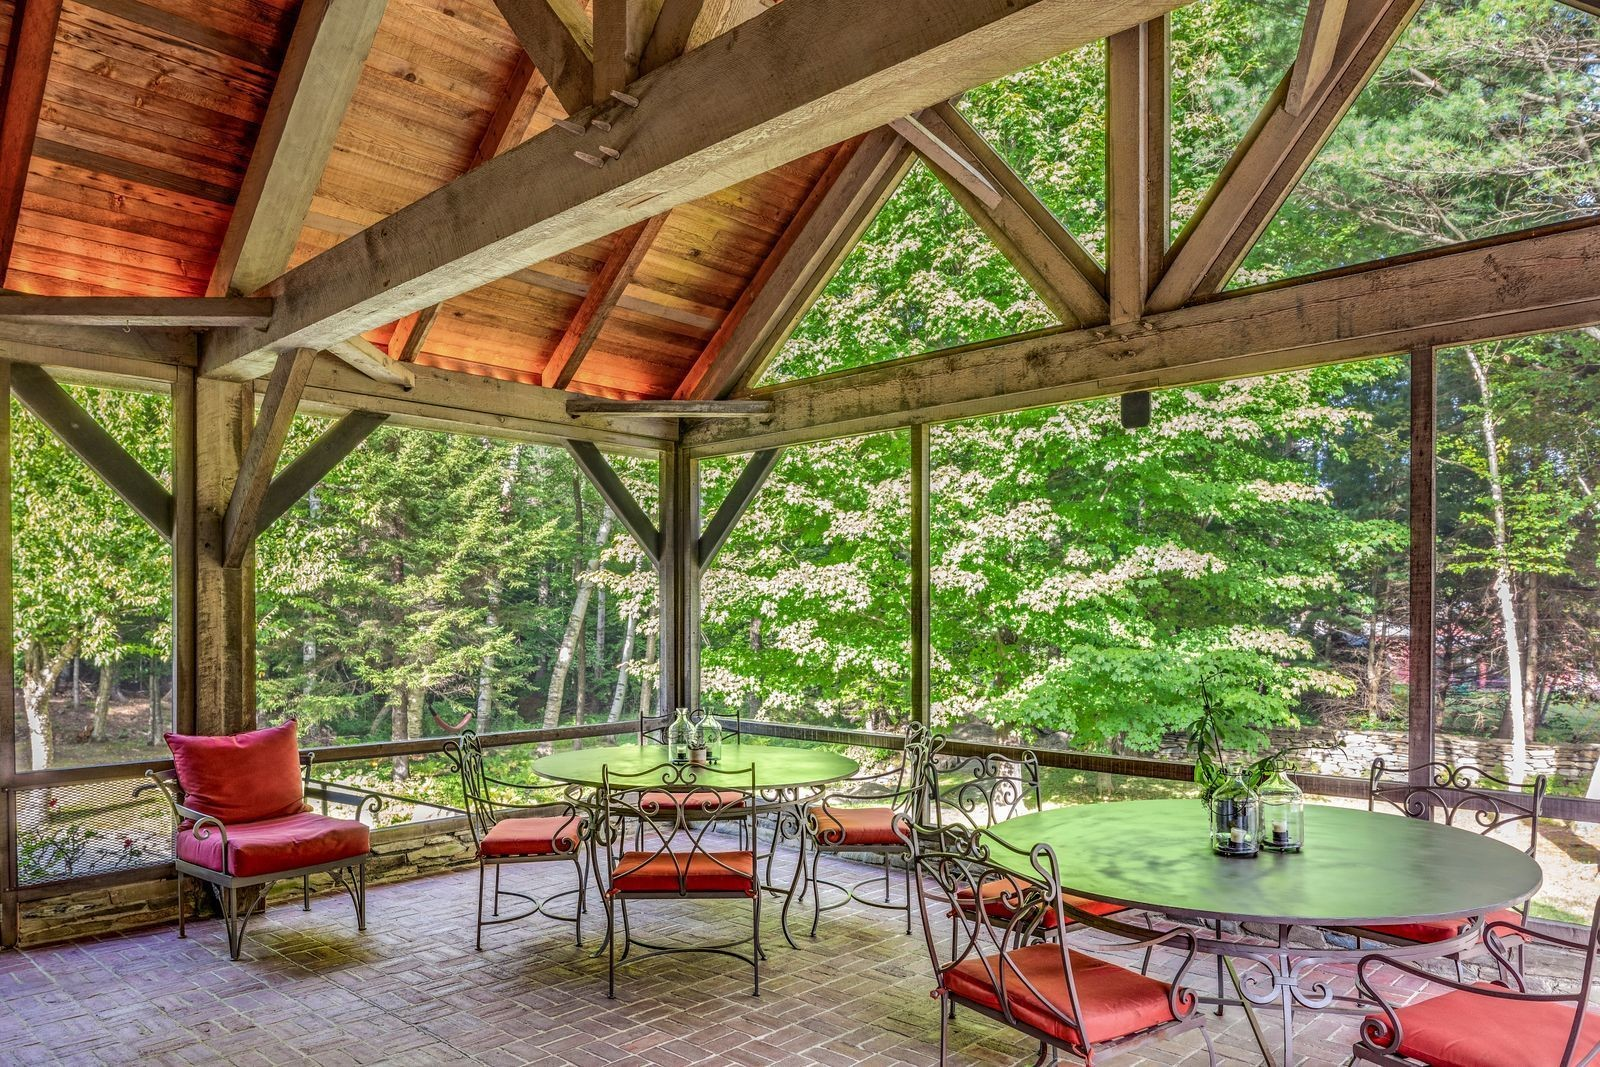 stony brook a luxury single family home for sale in dorset, vermont property id 416975152 christie s international real estate